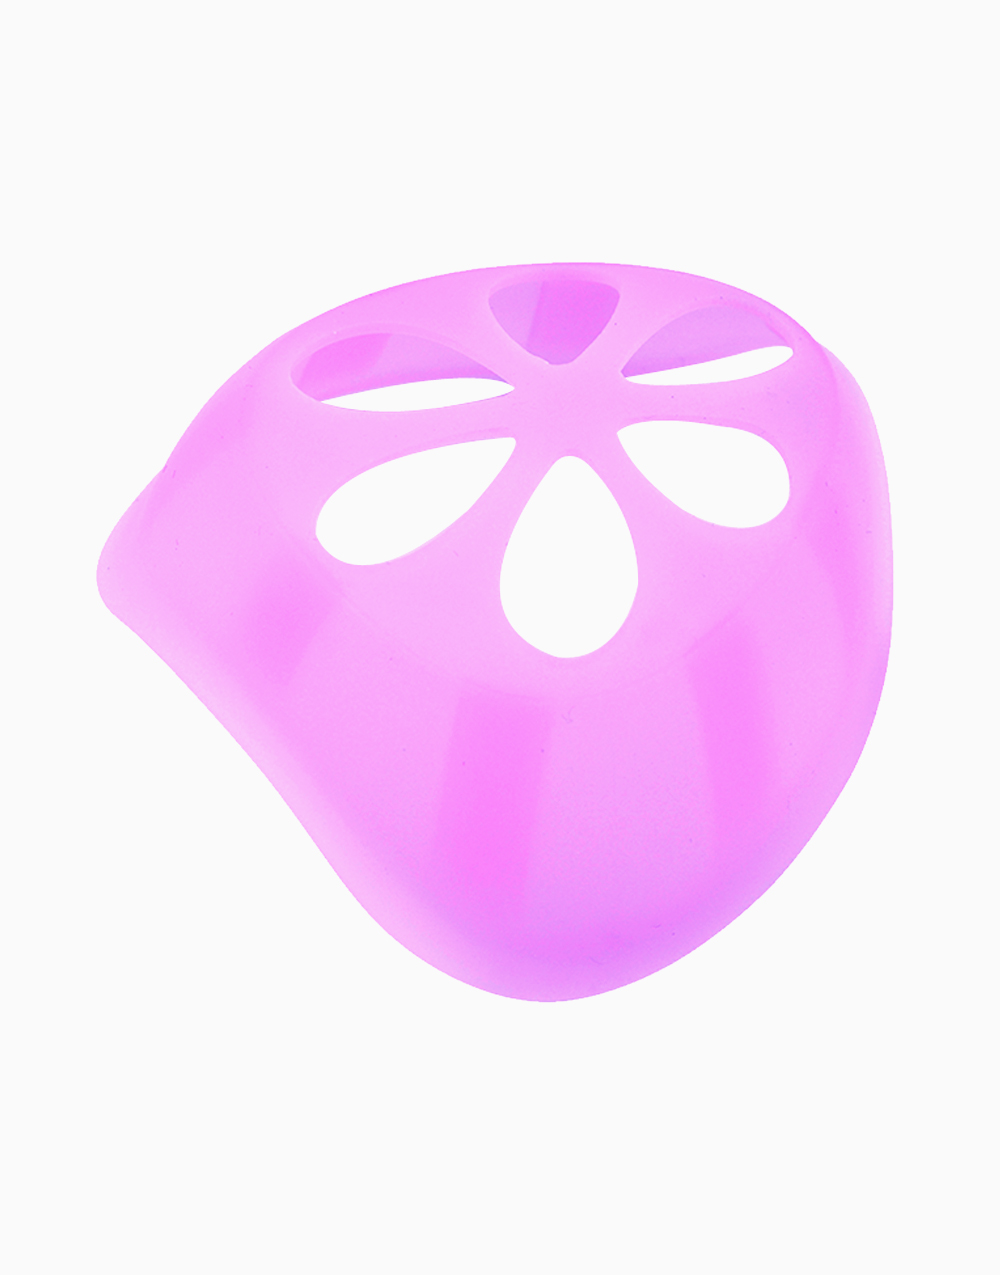 Face Mask Support by Wanderskye | Pink